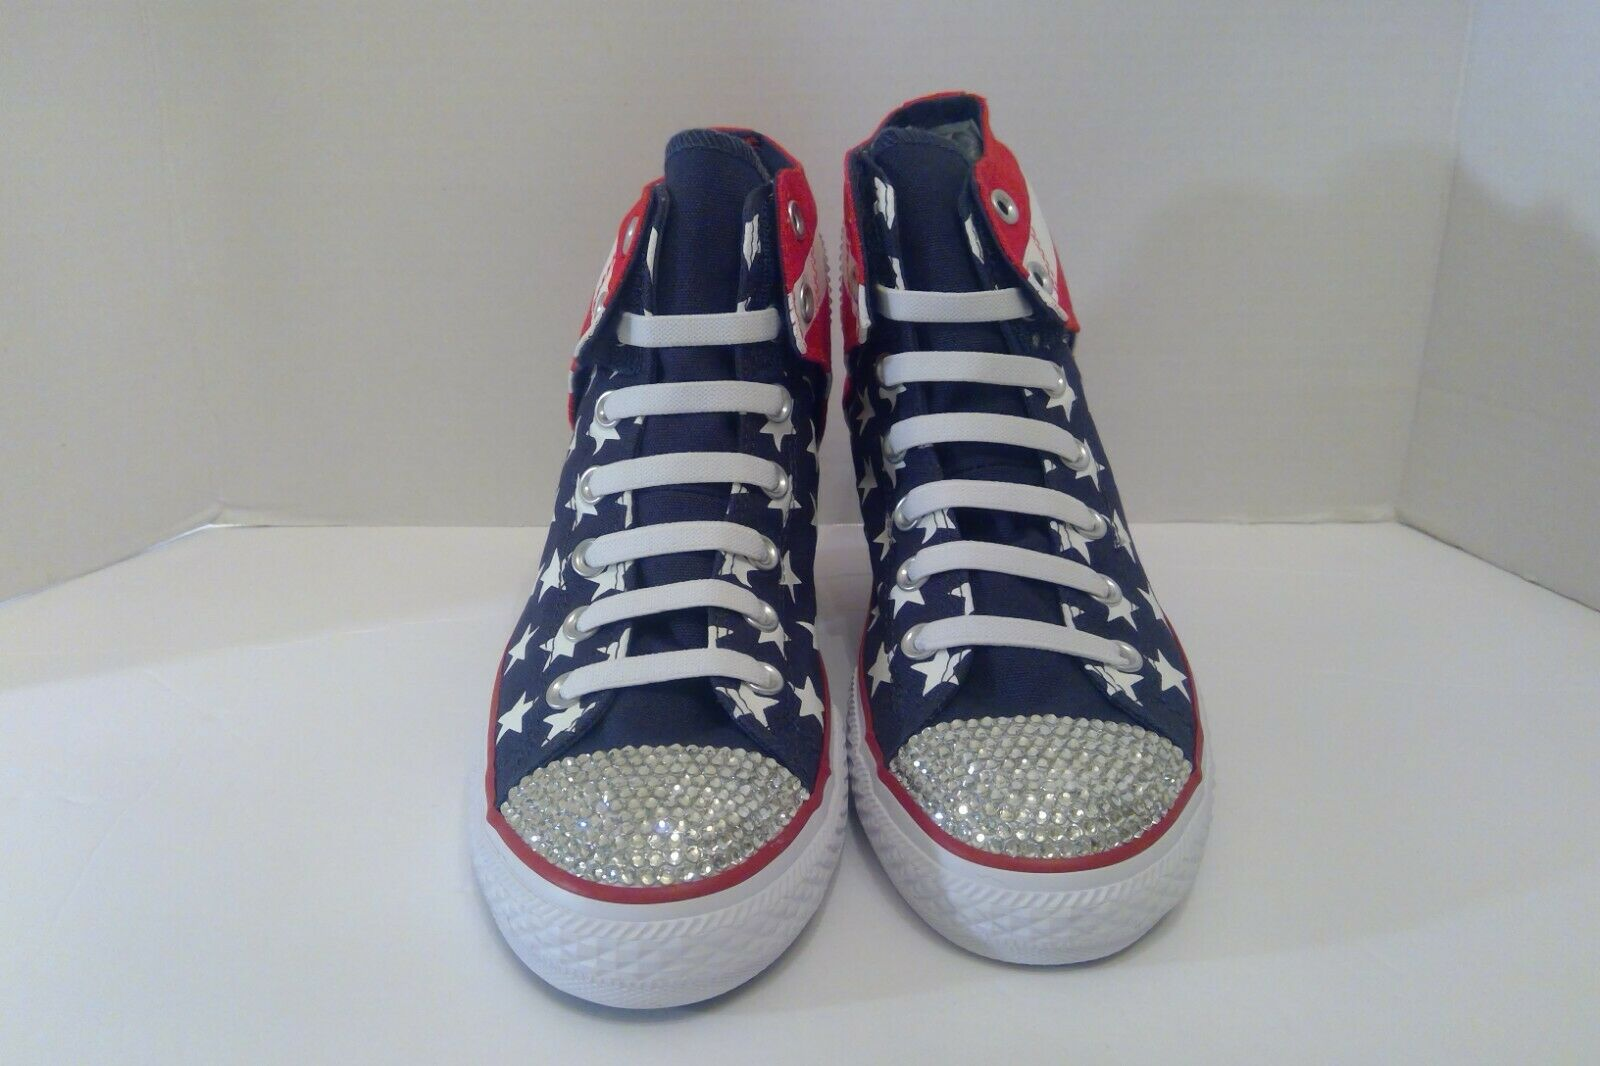 NEW Bling Red Wht bluee Converse Velcro All Star Chuck Taylor Youth Sz 6